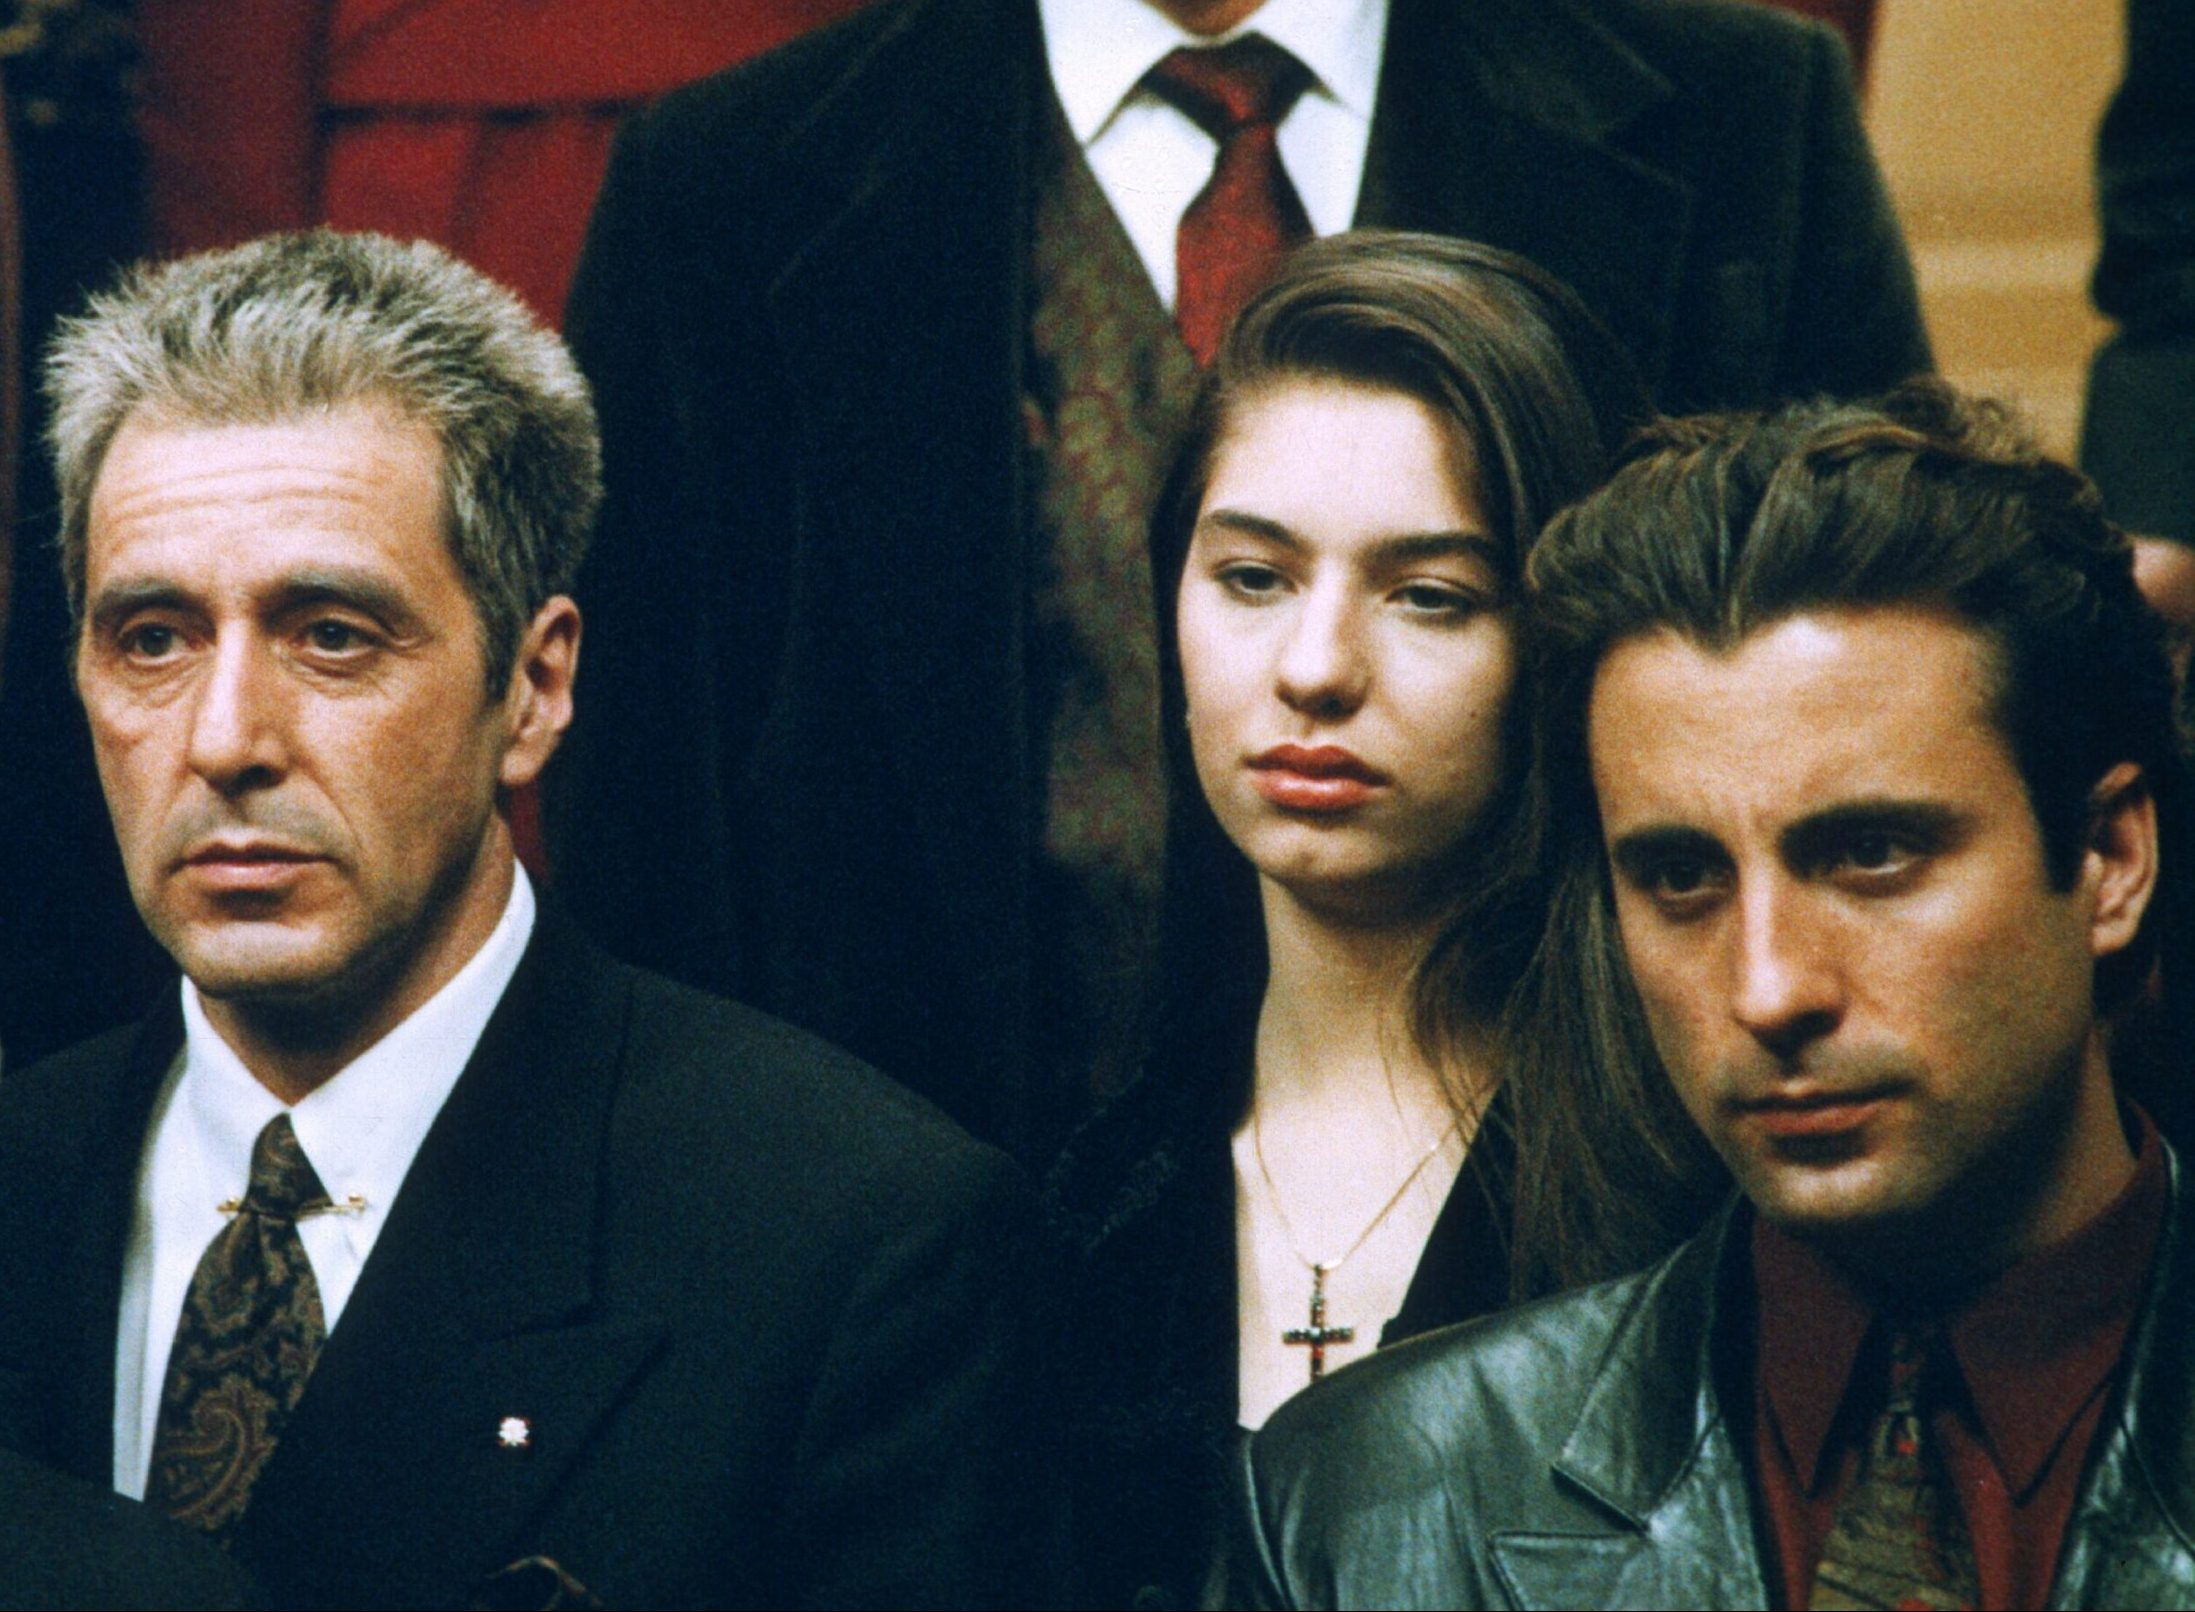 thegodfatherpartiii1990.76549 scaled e1618318372513 20 Fascinating Facts About The Godfather You Can't Refuse